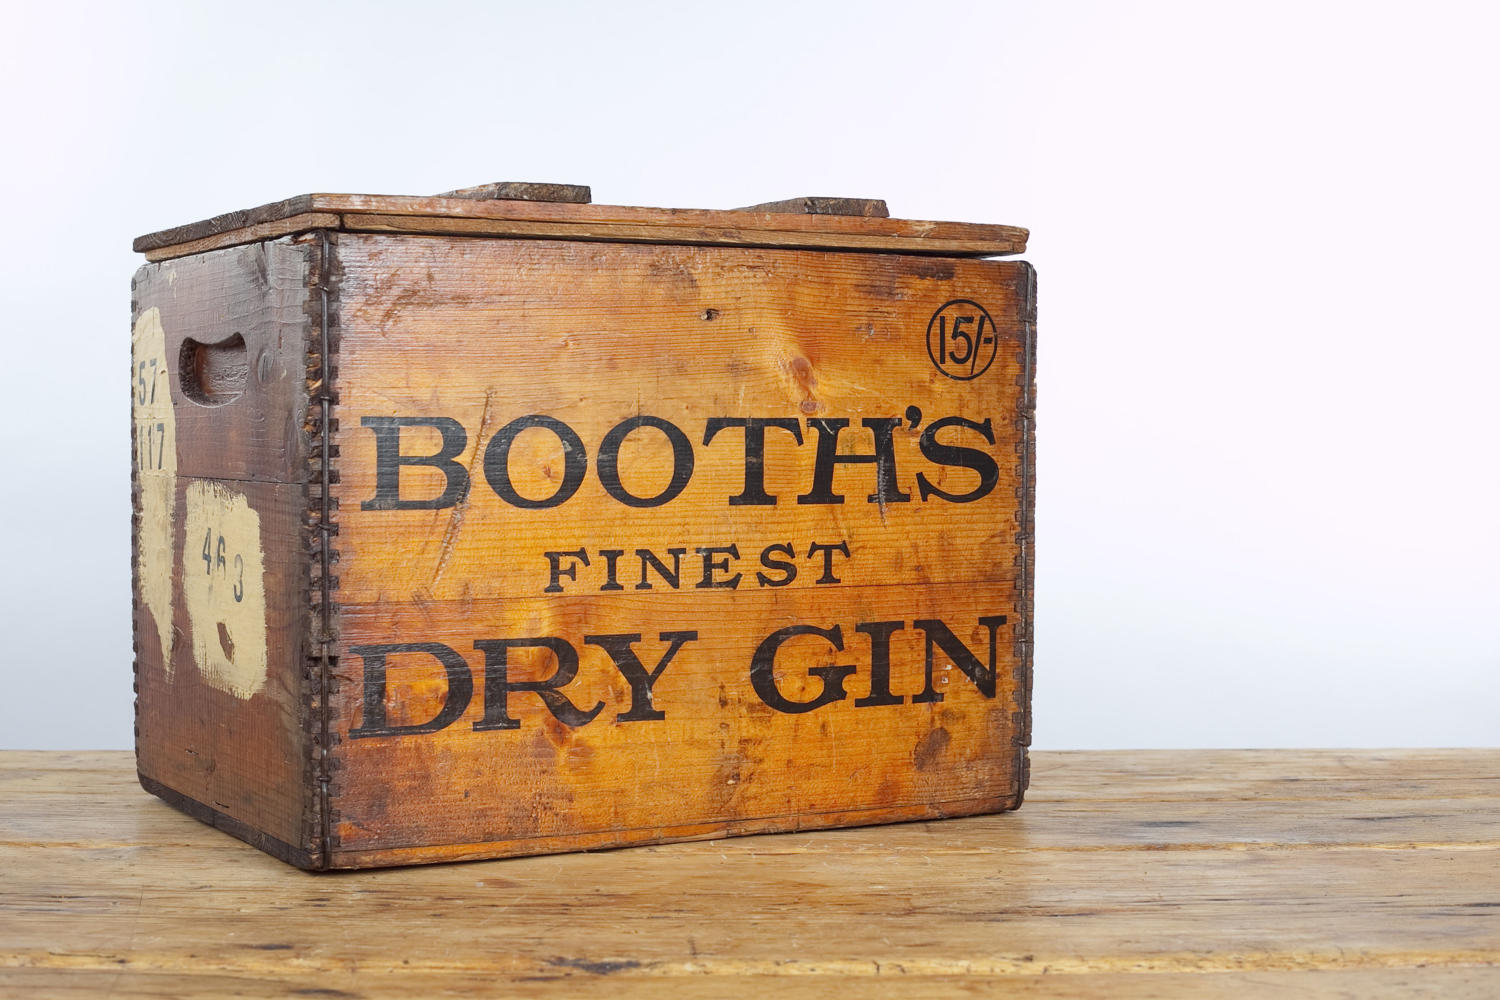 Vintage packing crate for Booth's Finest Dry Gin